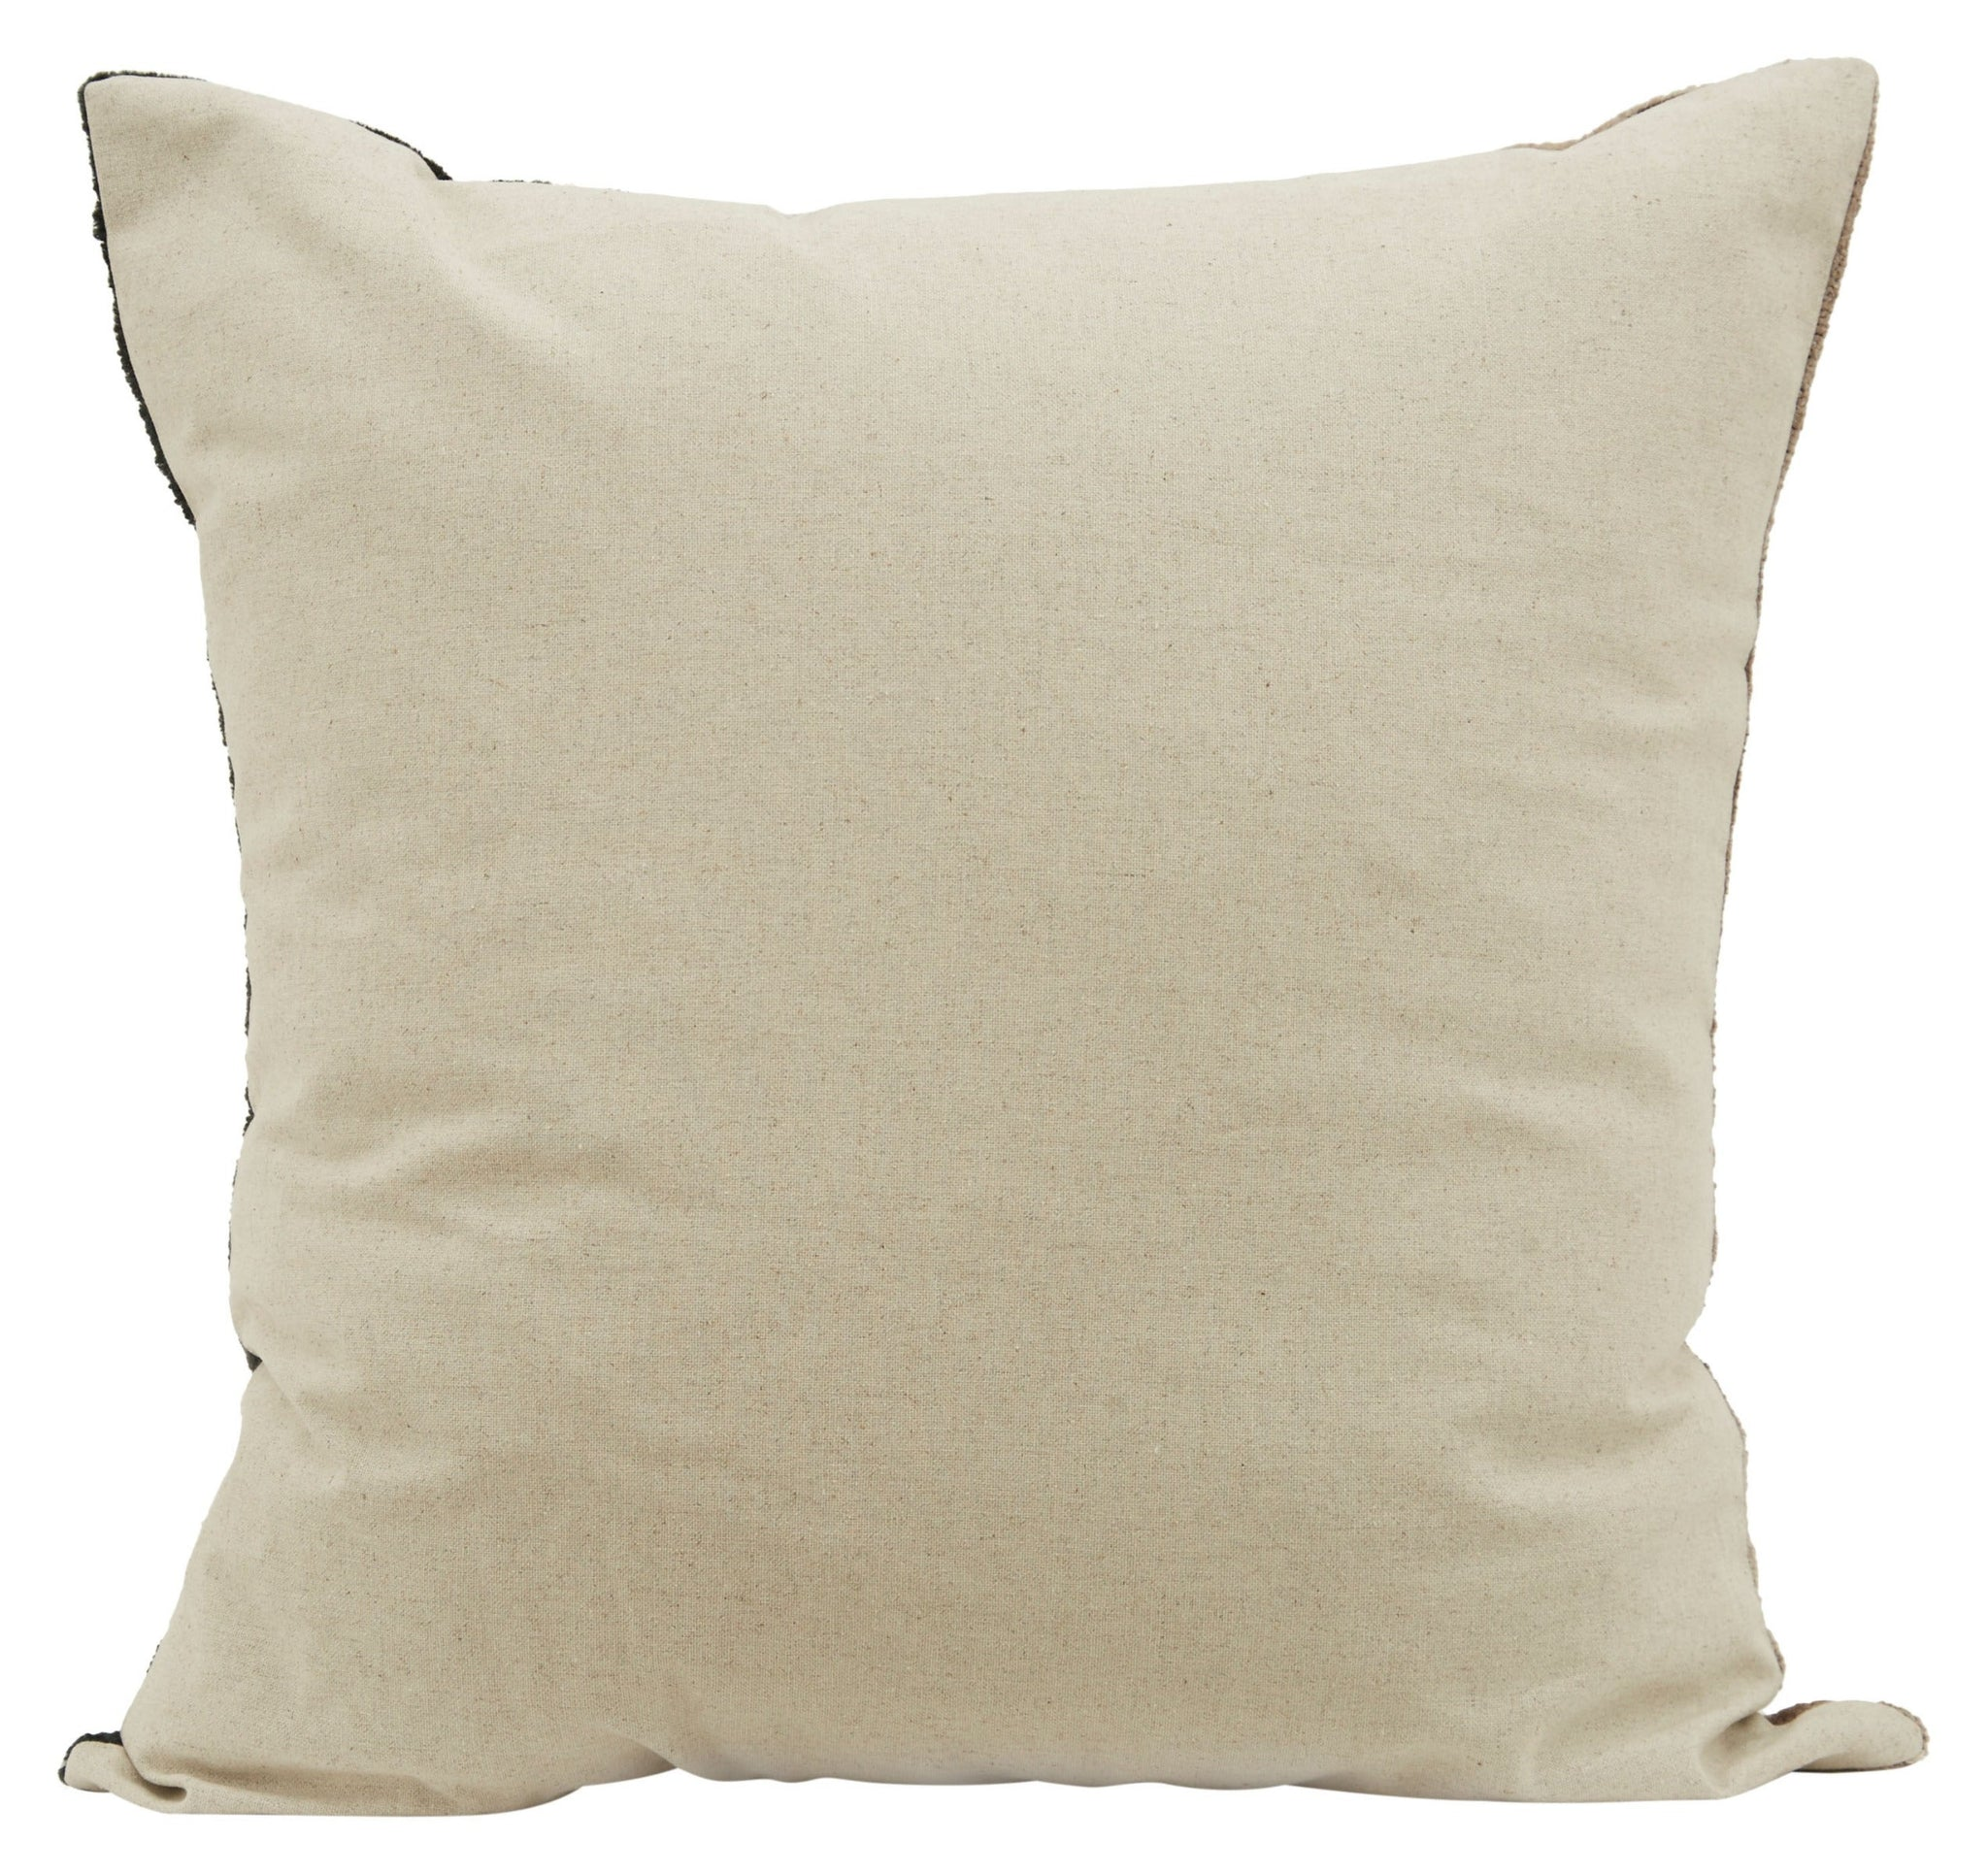 Oria Pillow